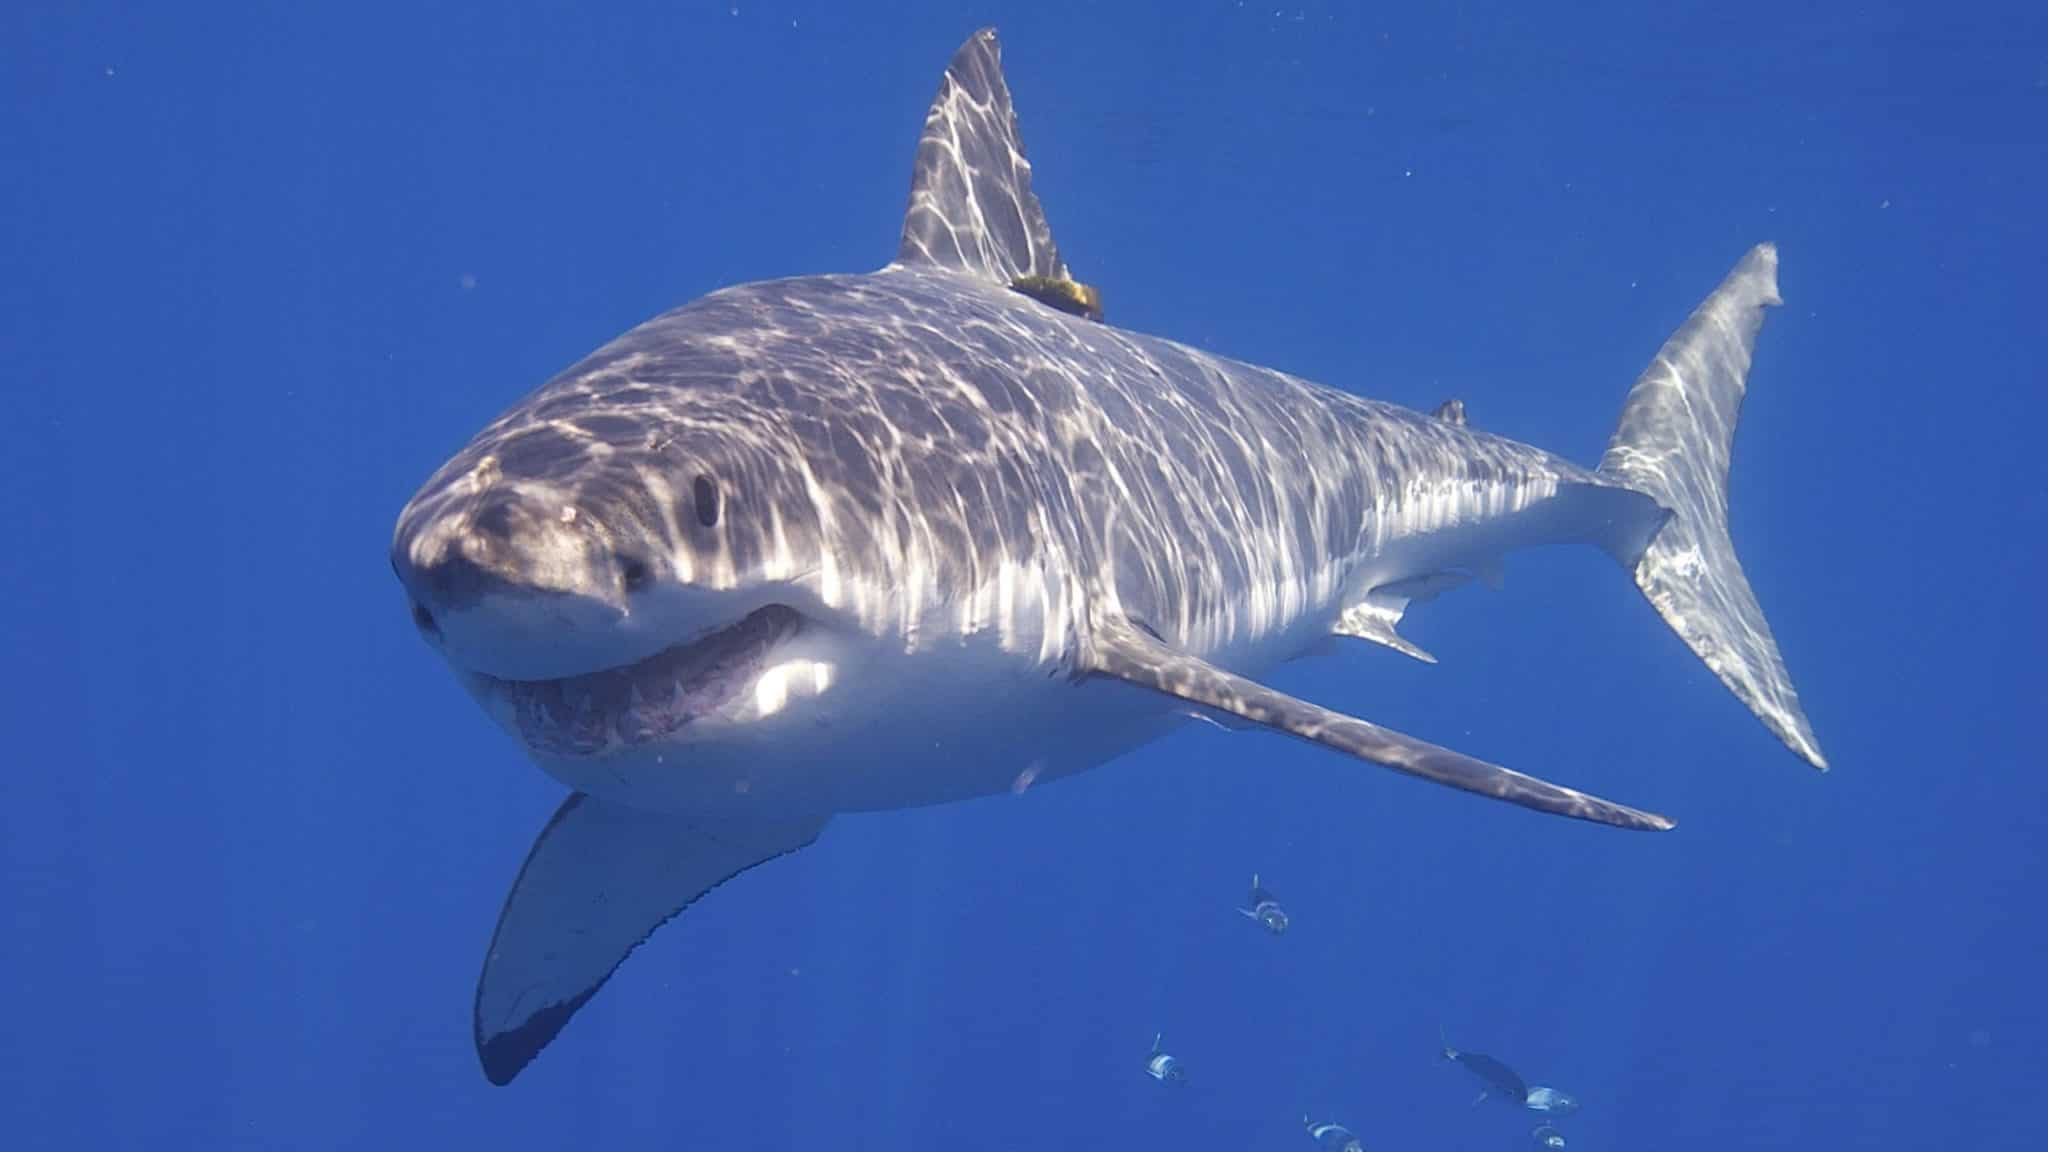 The scary and equally massive Great White Shark